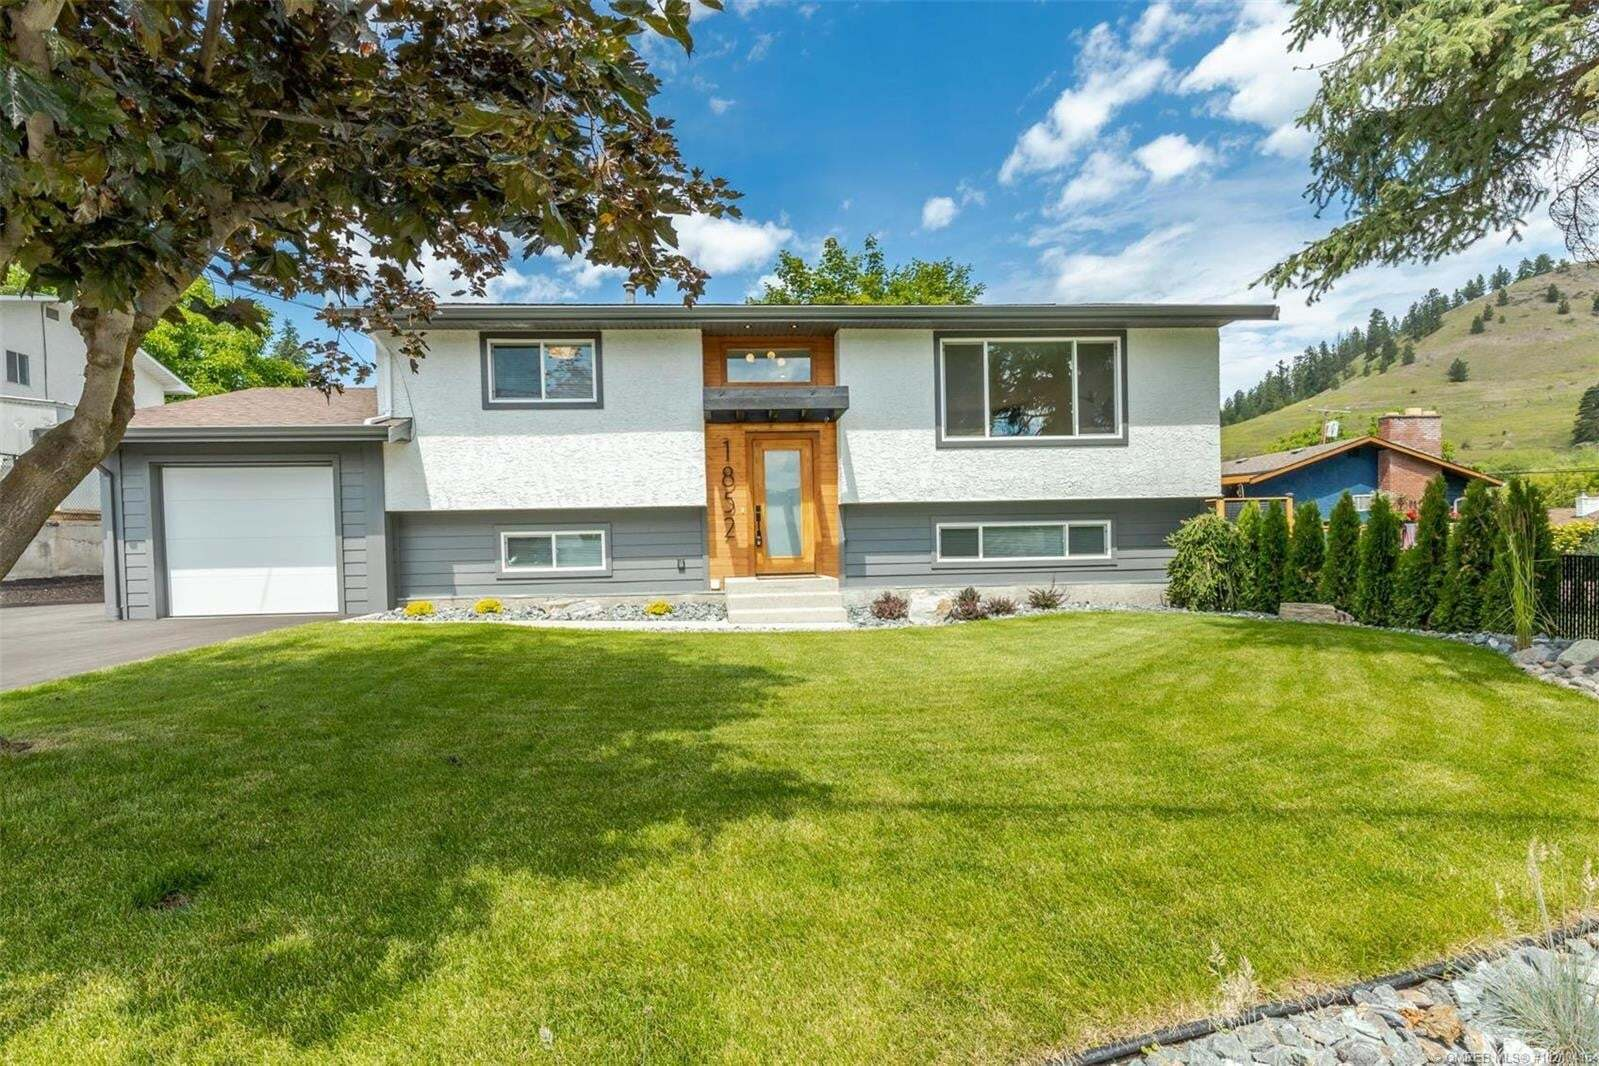 House for sale at 1852 Cathy Ave Kelowna British Columbia - MLS: 10210416